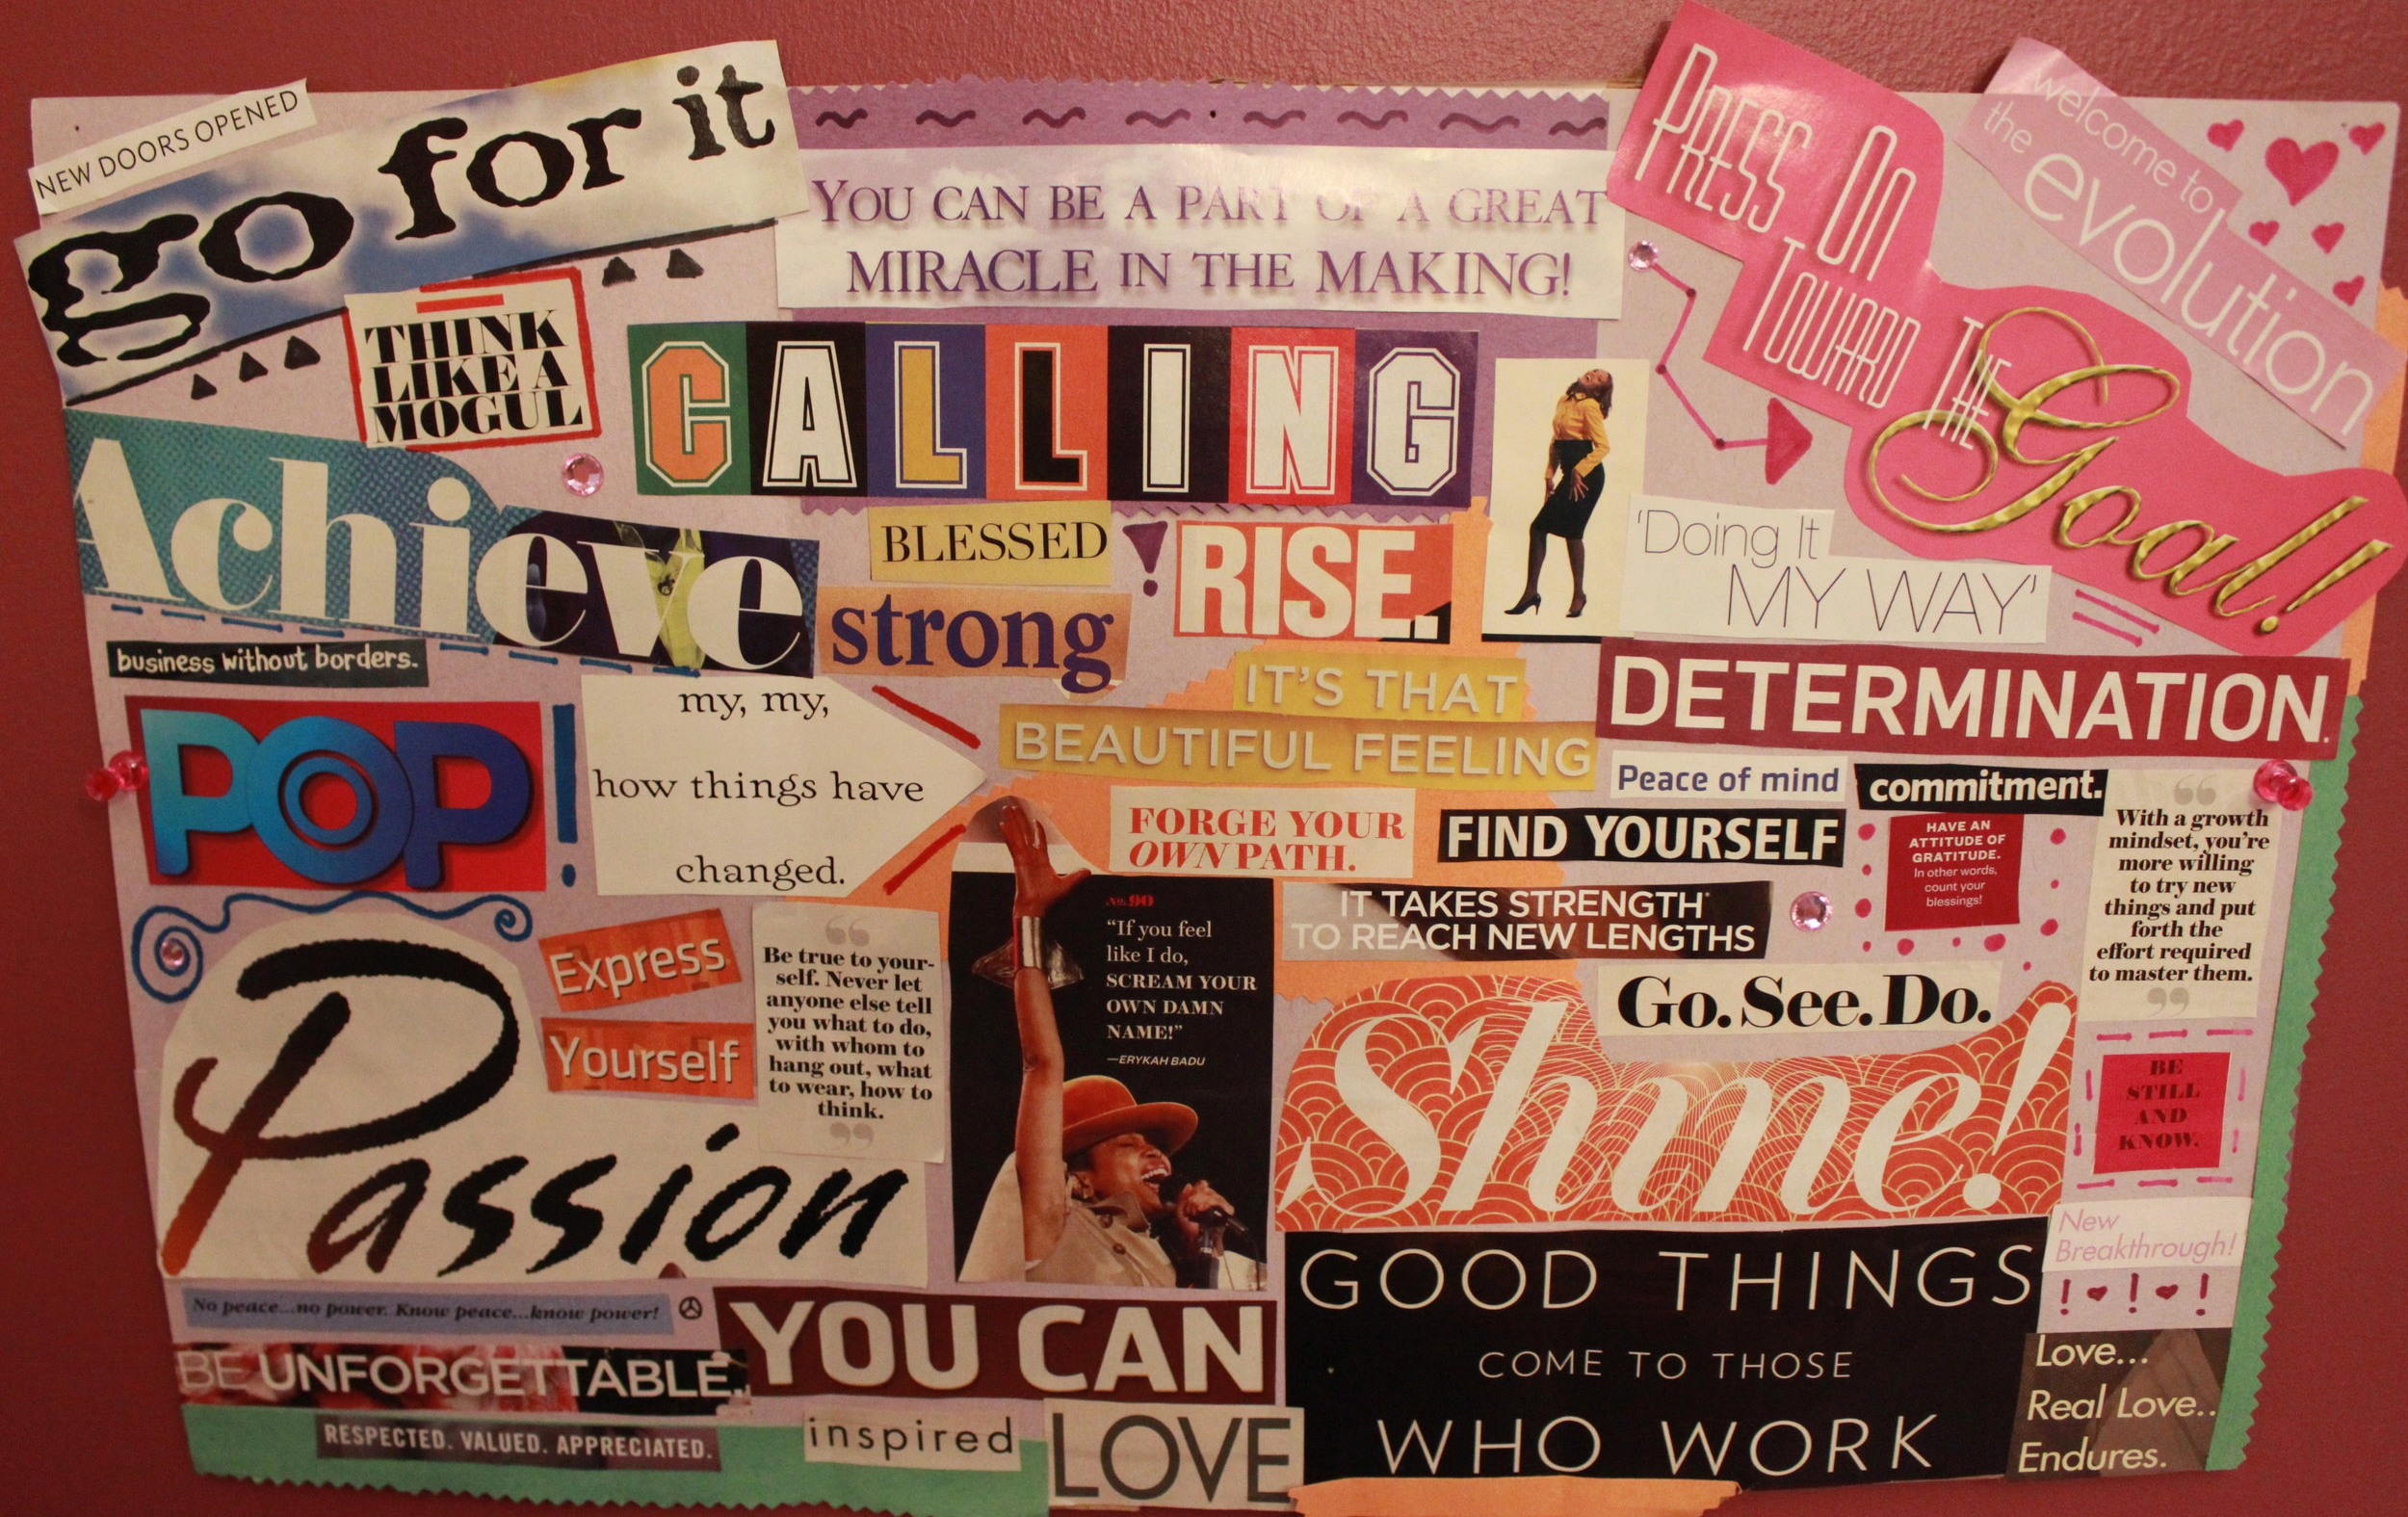 On this vision board, I added art in the empty spaces to give an extra pop!